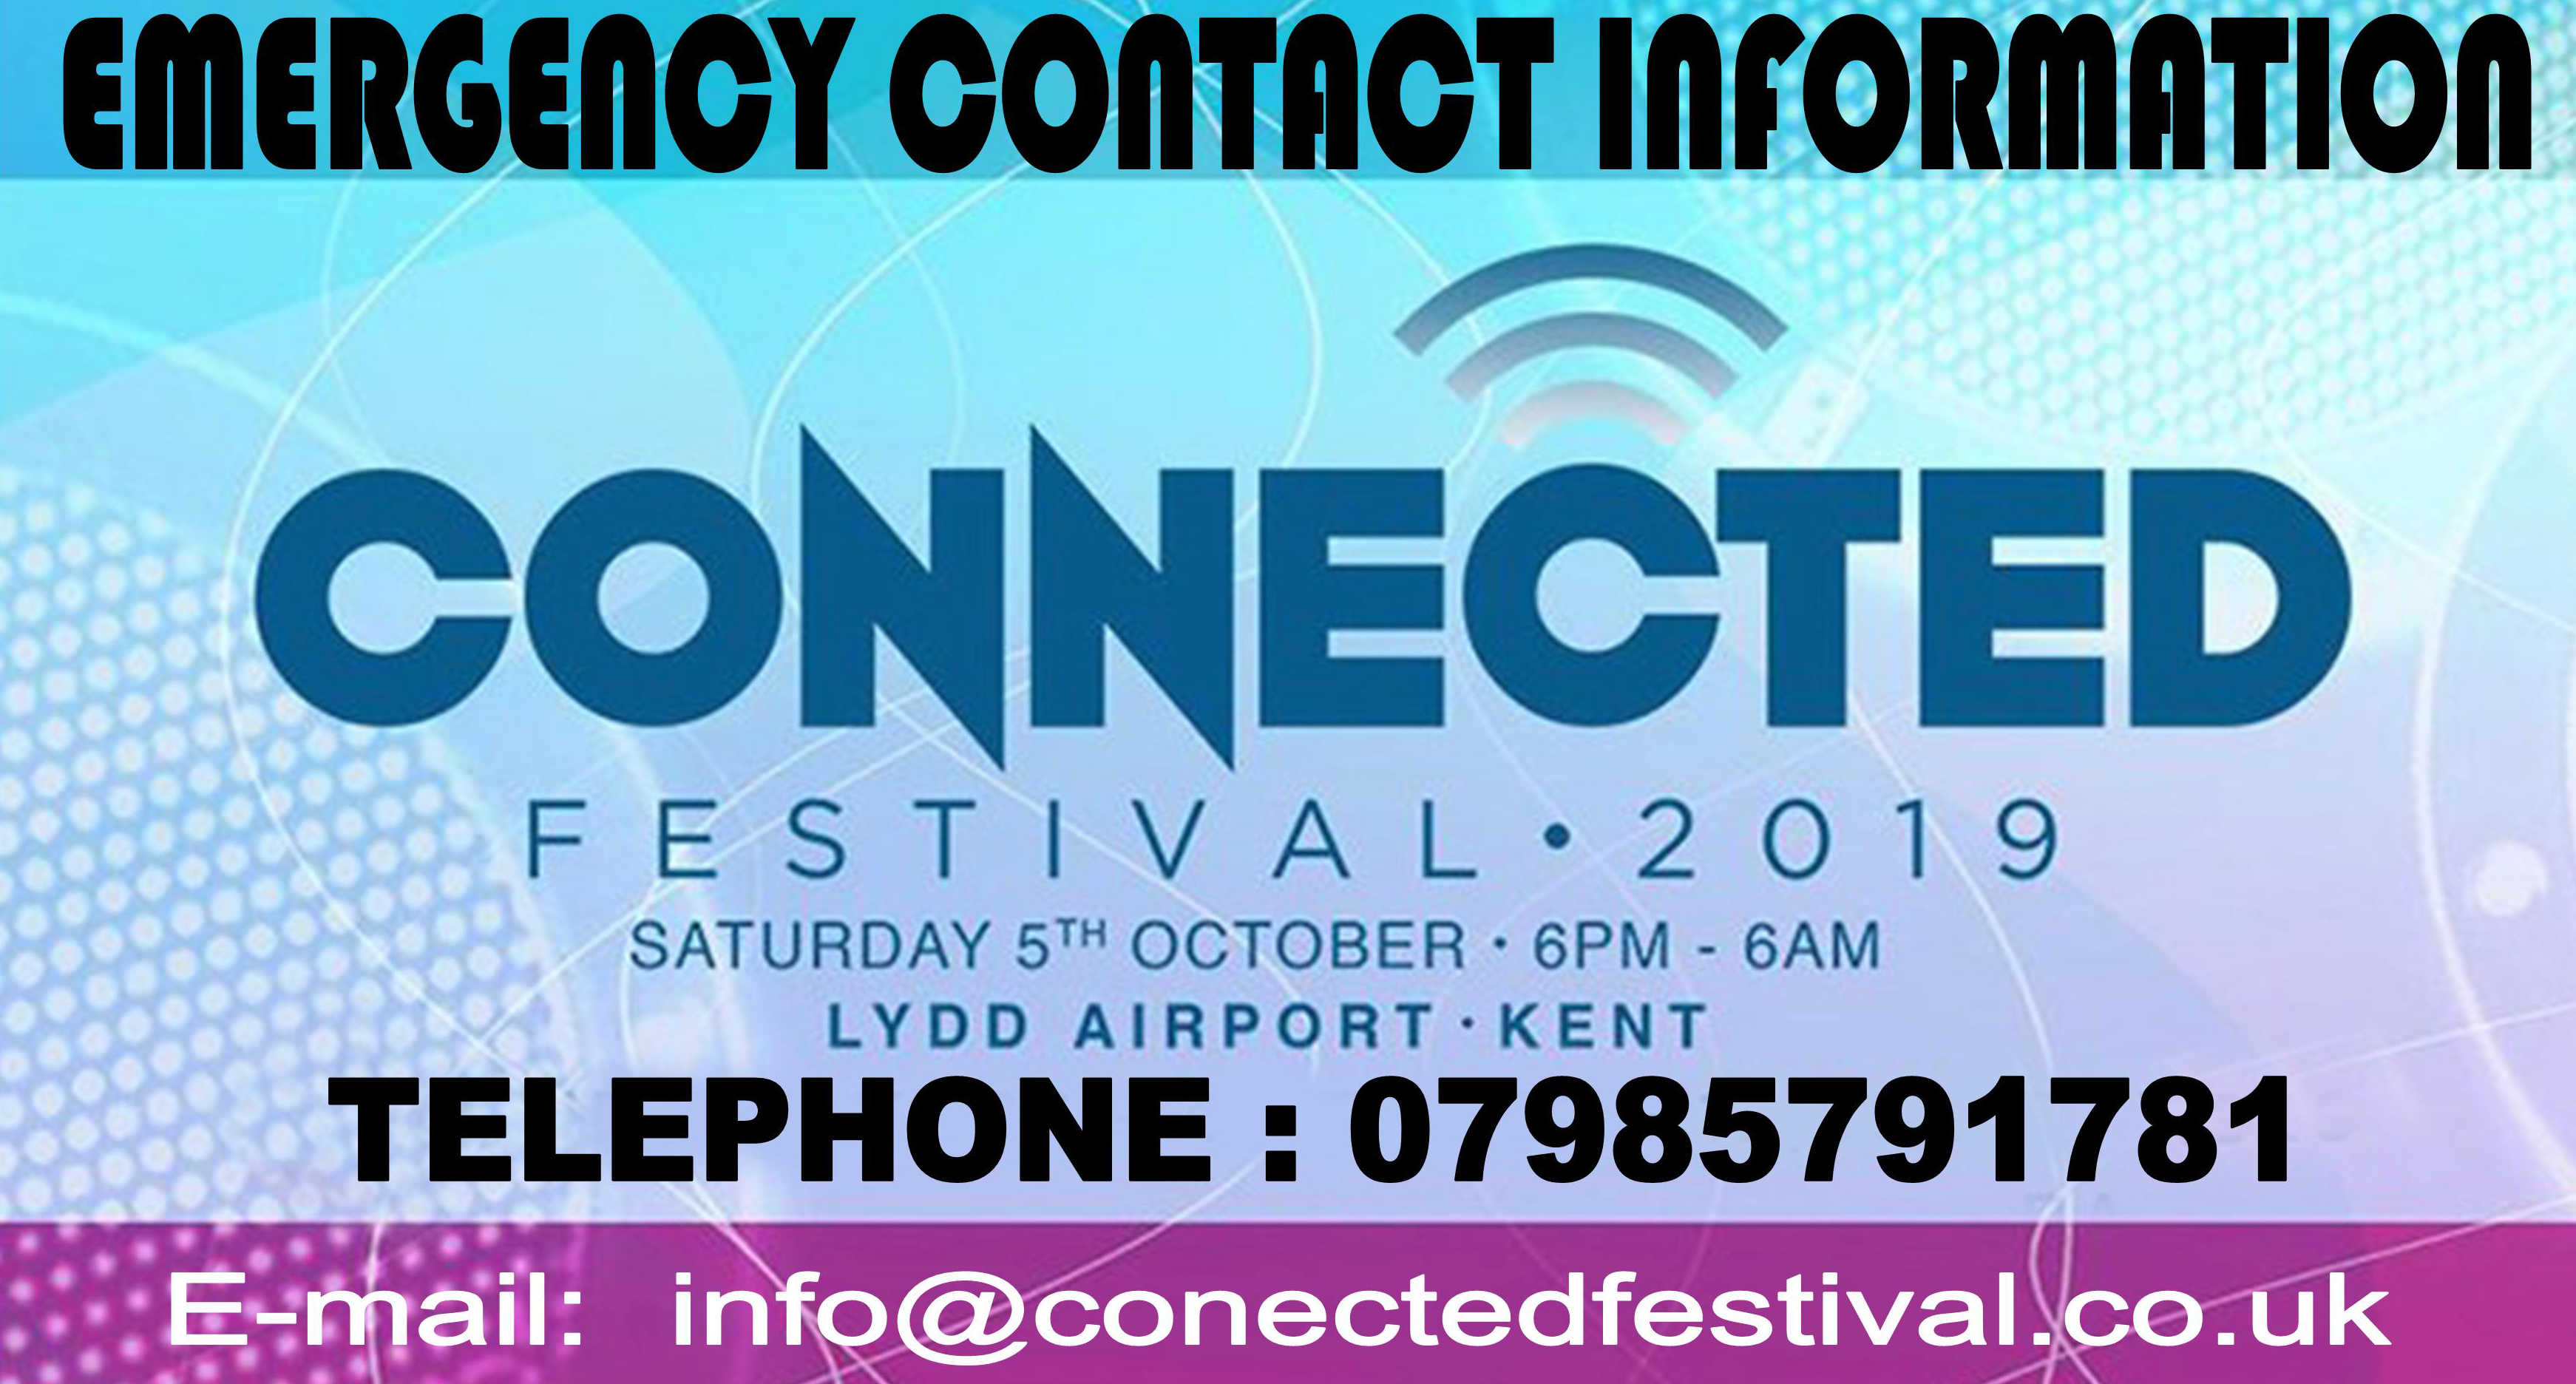 Connected Festival Organisers Planning for a Great Trouble Free Event